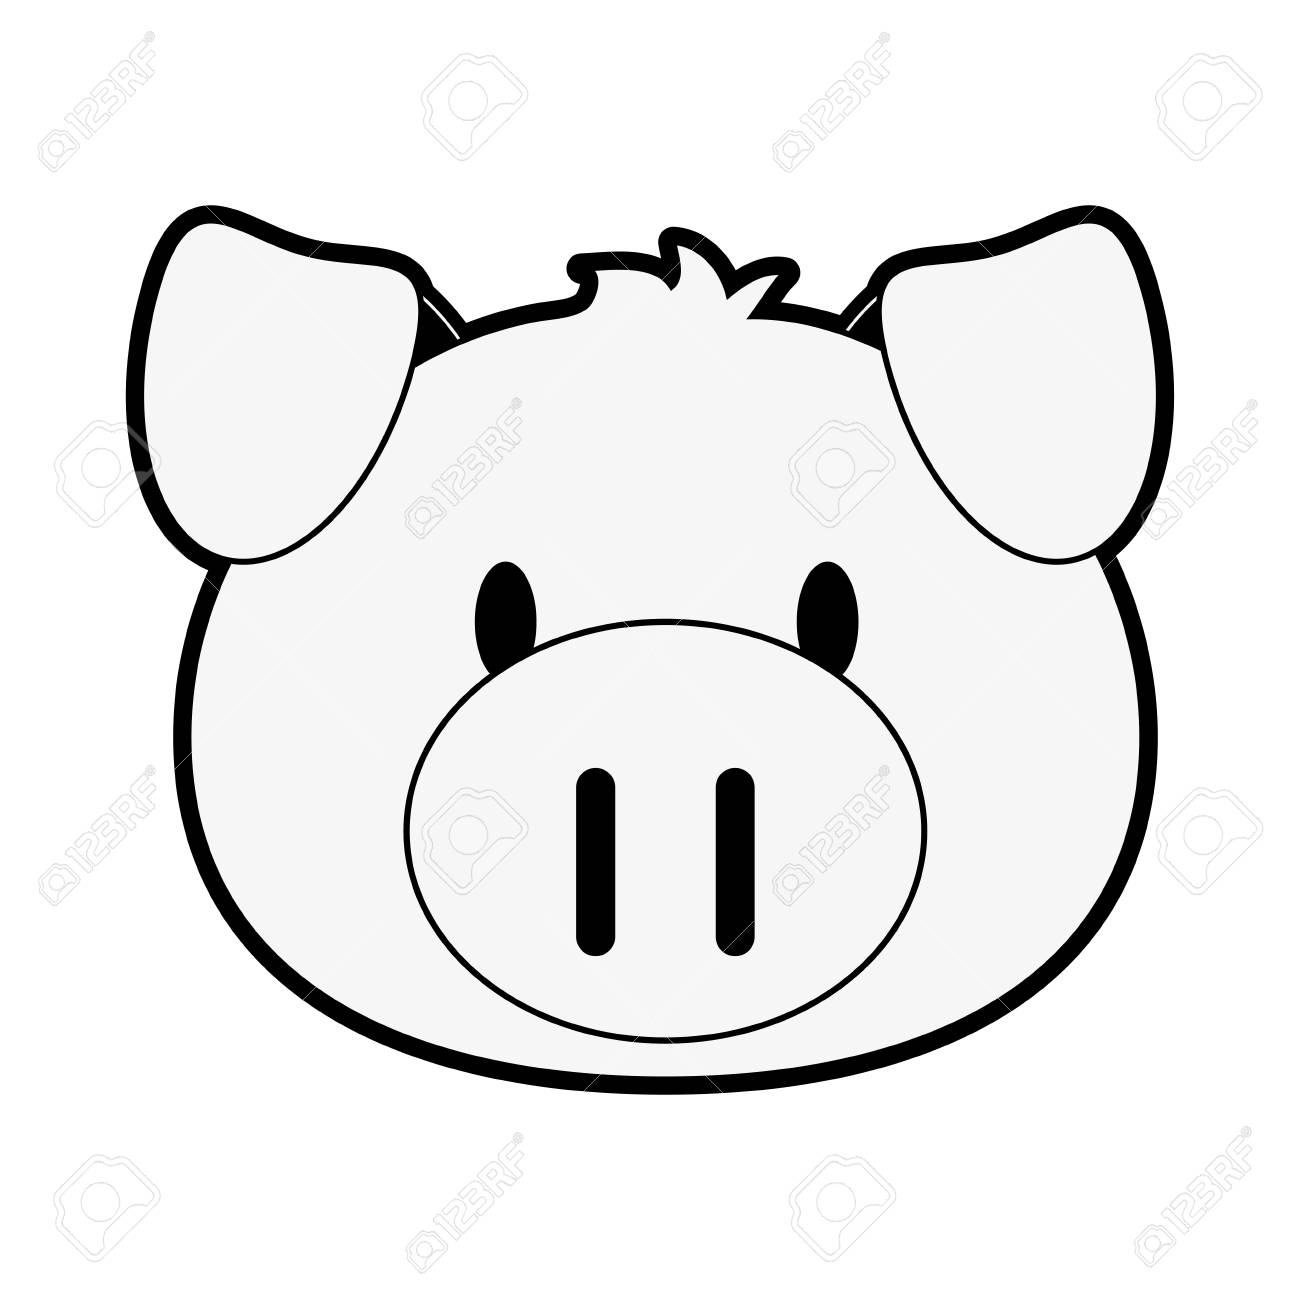 11222 Pig free clipart.